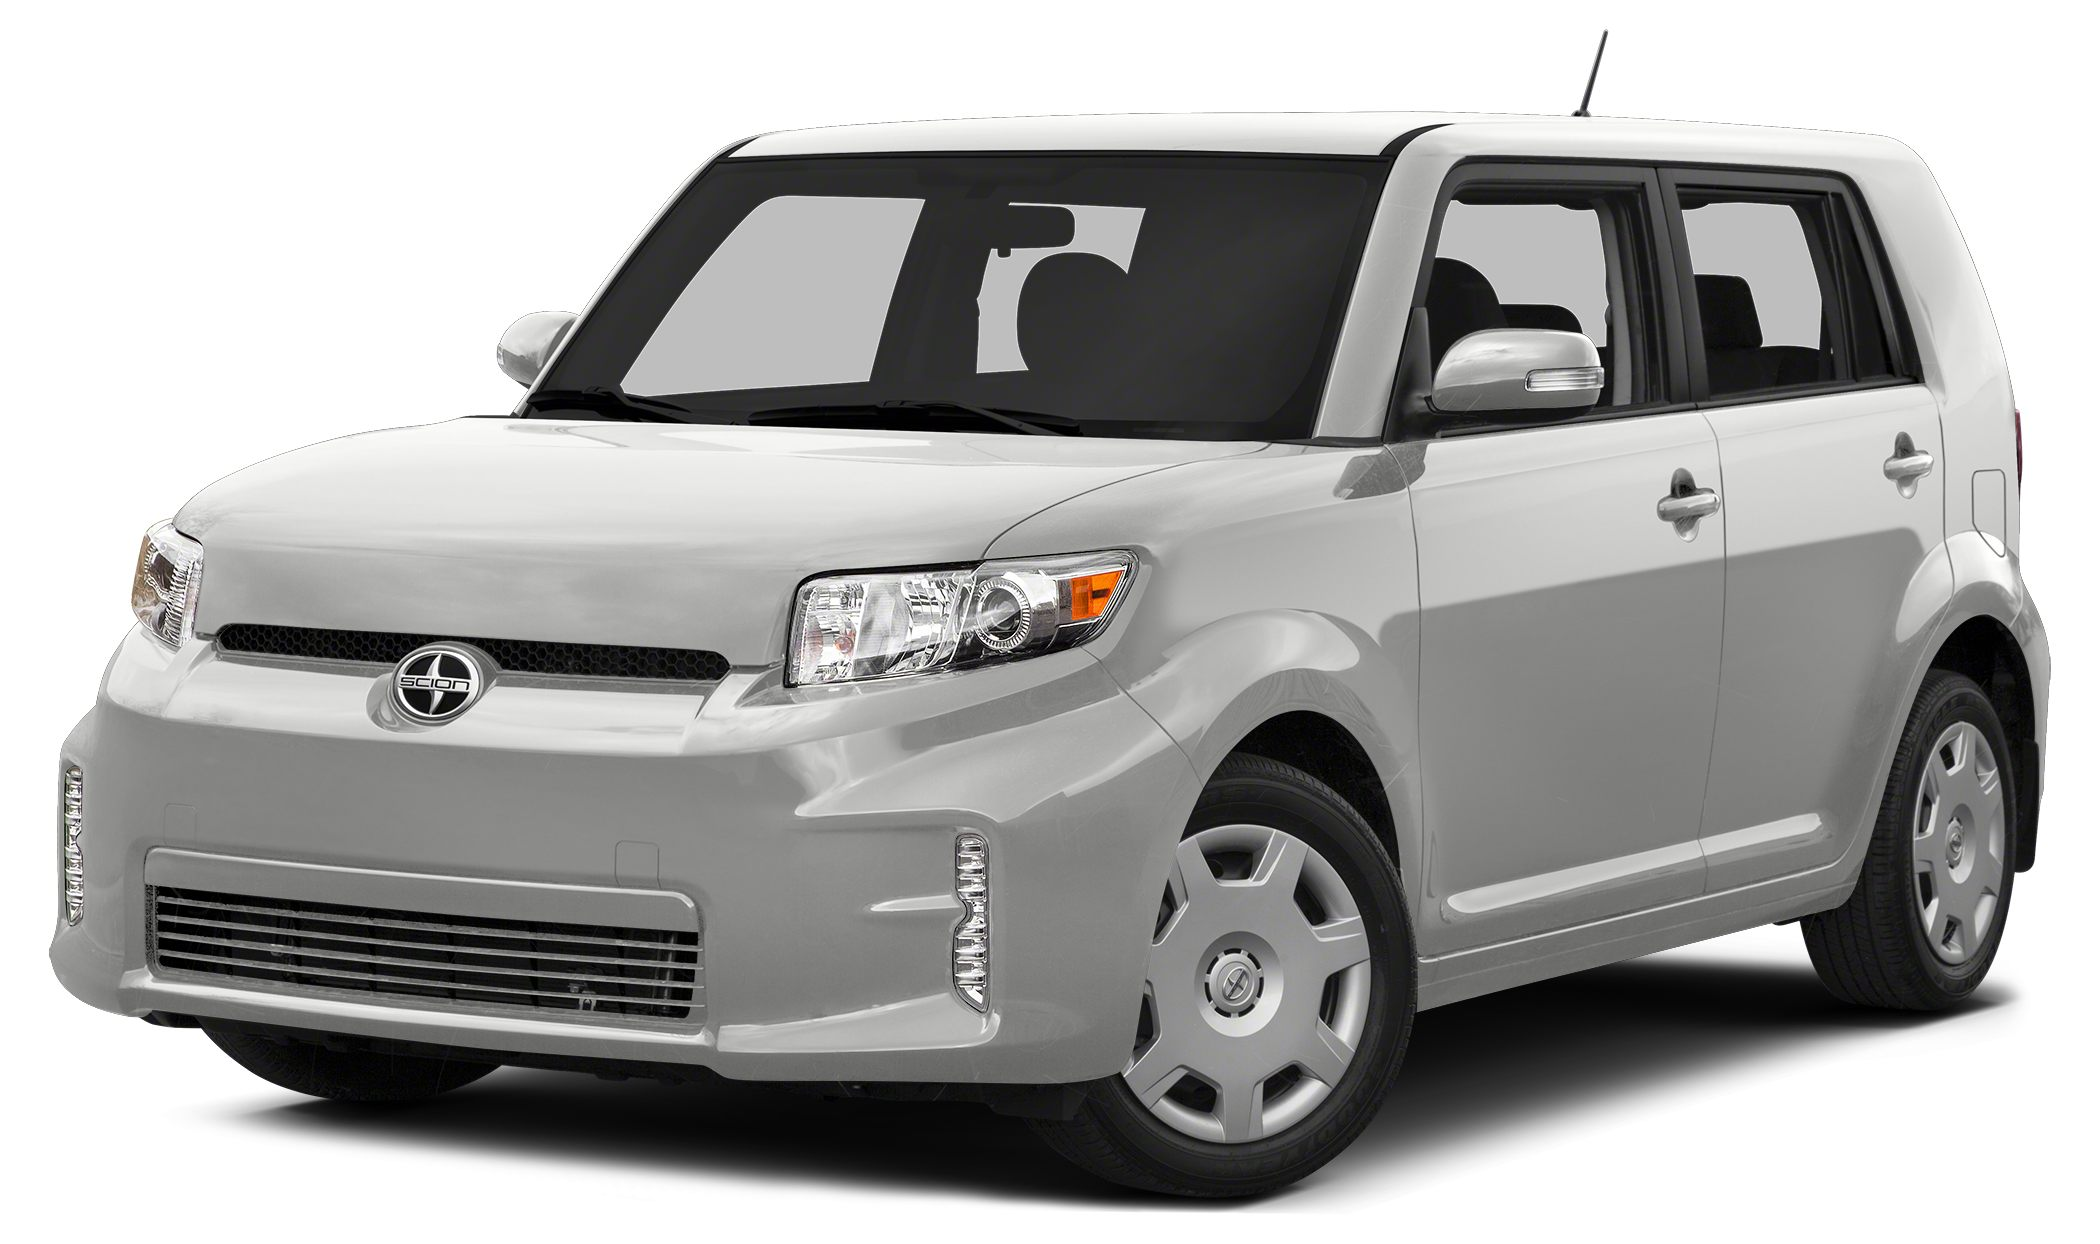 2014 Scion xB Release Series 100 FUEL EFFICIENT 28 MPG Hwy22 MPG City CARFAX 1-Owner ONLY 321